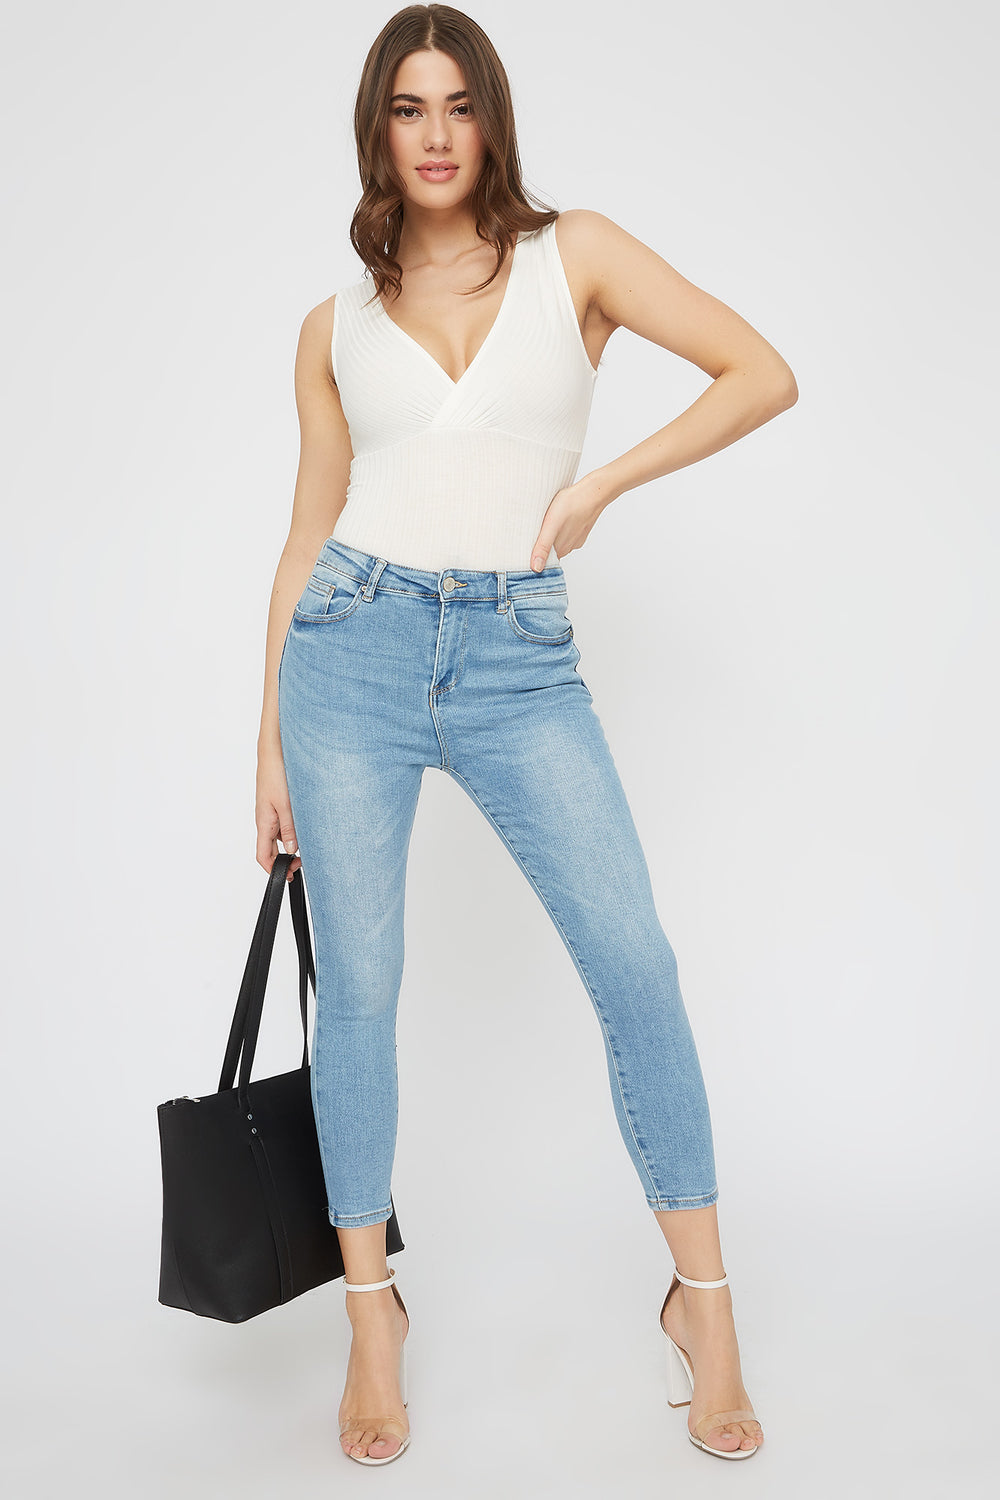 Butt, I Love You High-Rise Cropped Push-Up Skinny Jean Light Denim Blue